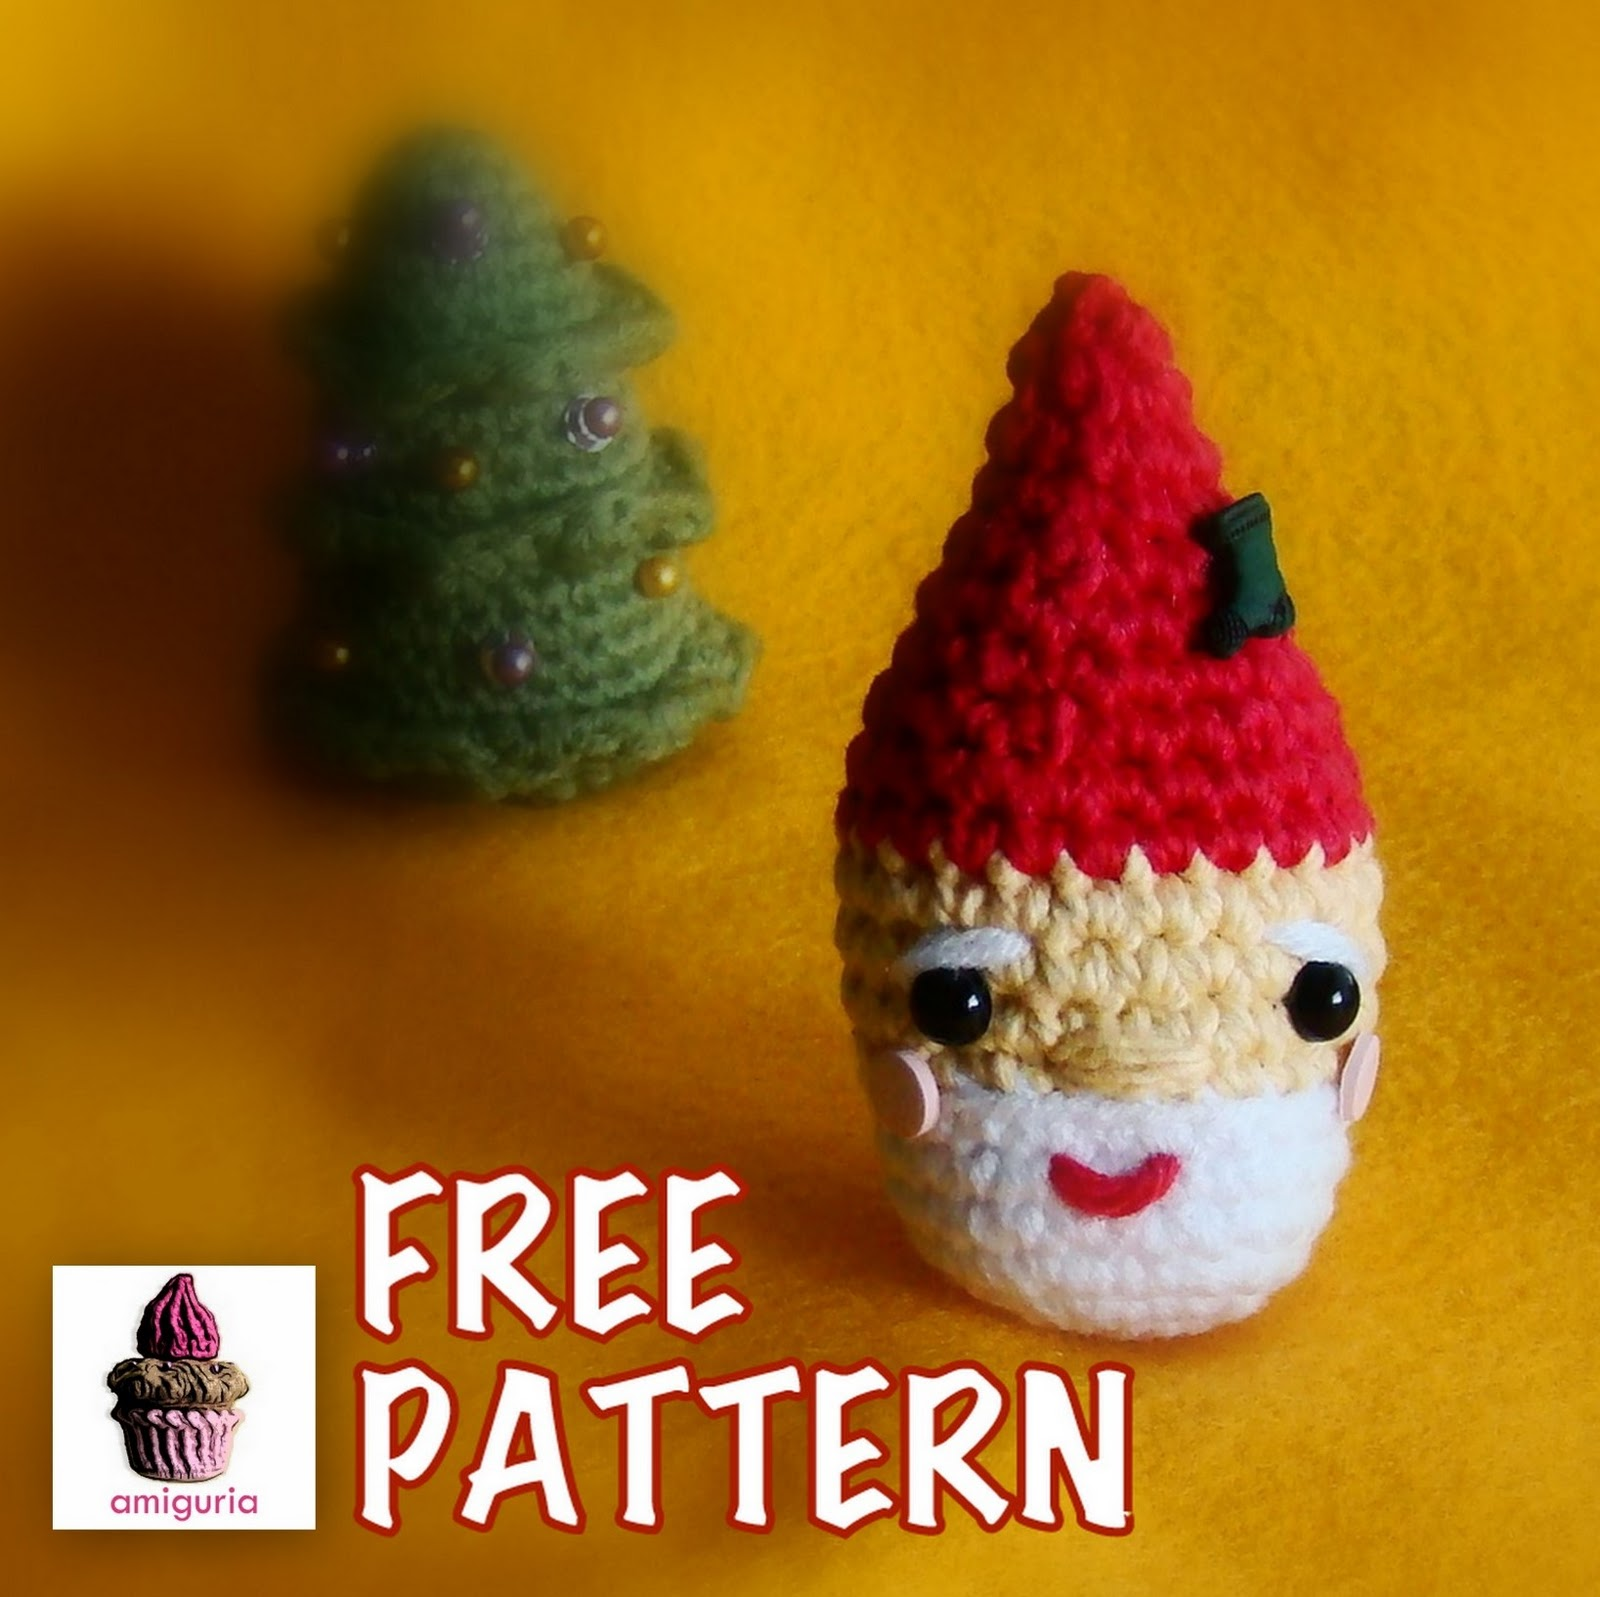 Amigurumi Santa Patterns : amiguria amigurumi: Free Pattern Santa Ornament